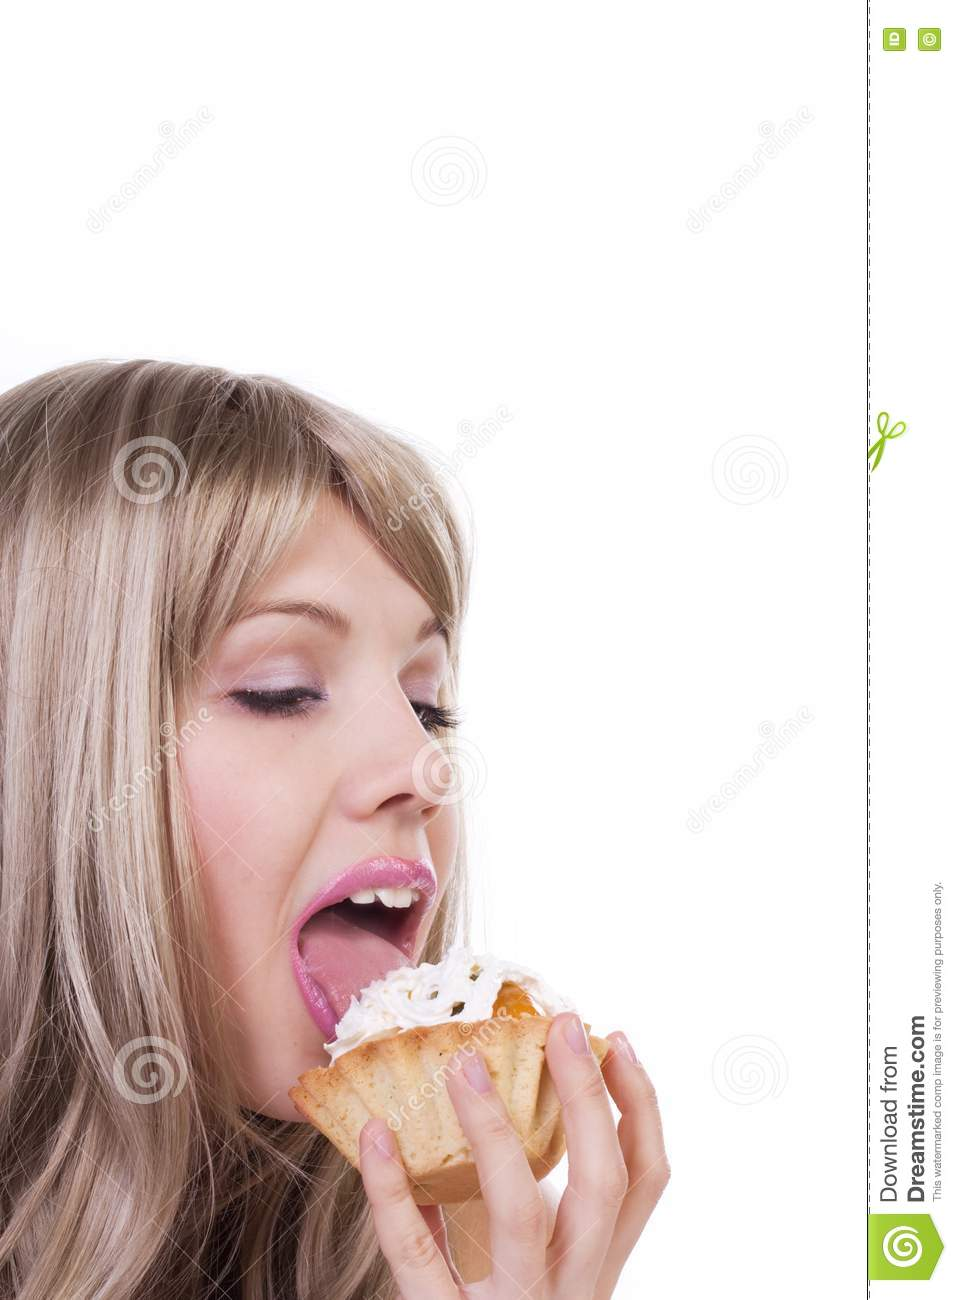 girl naked licking ice cream cone